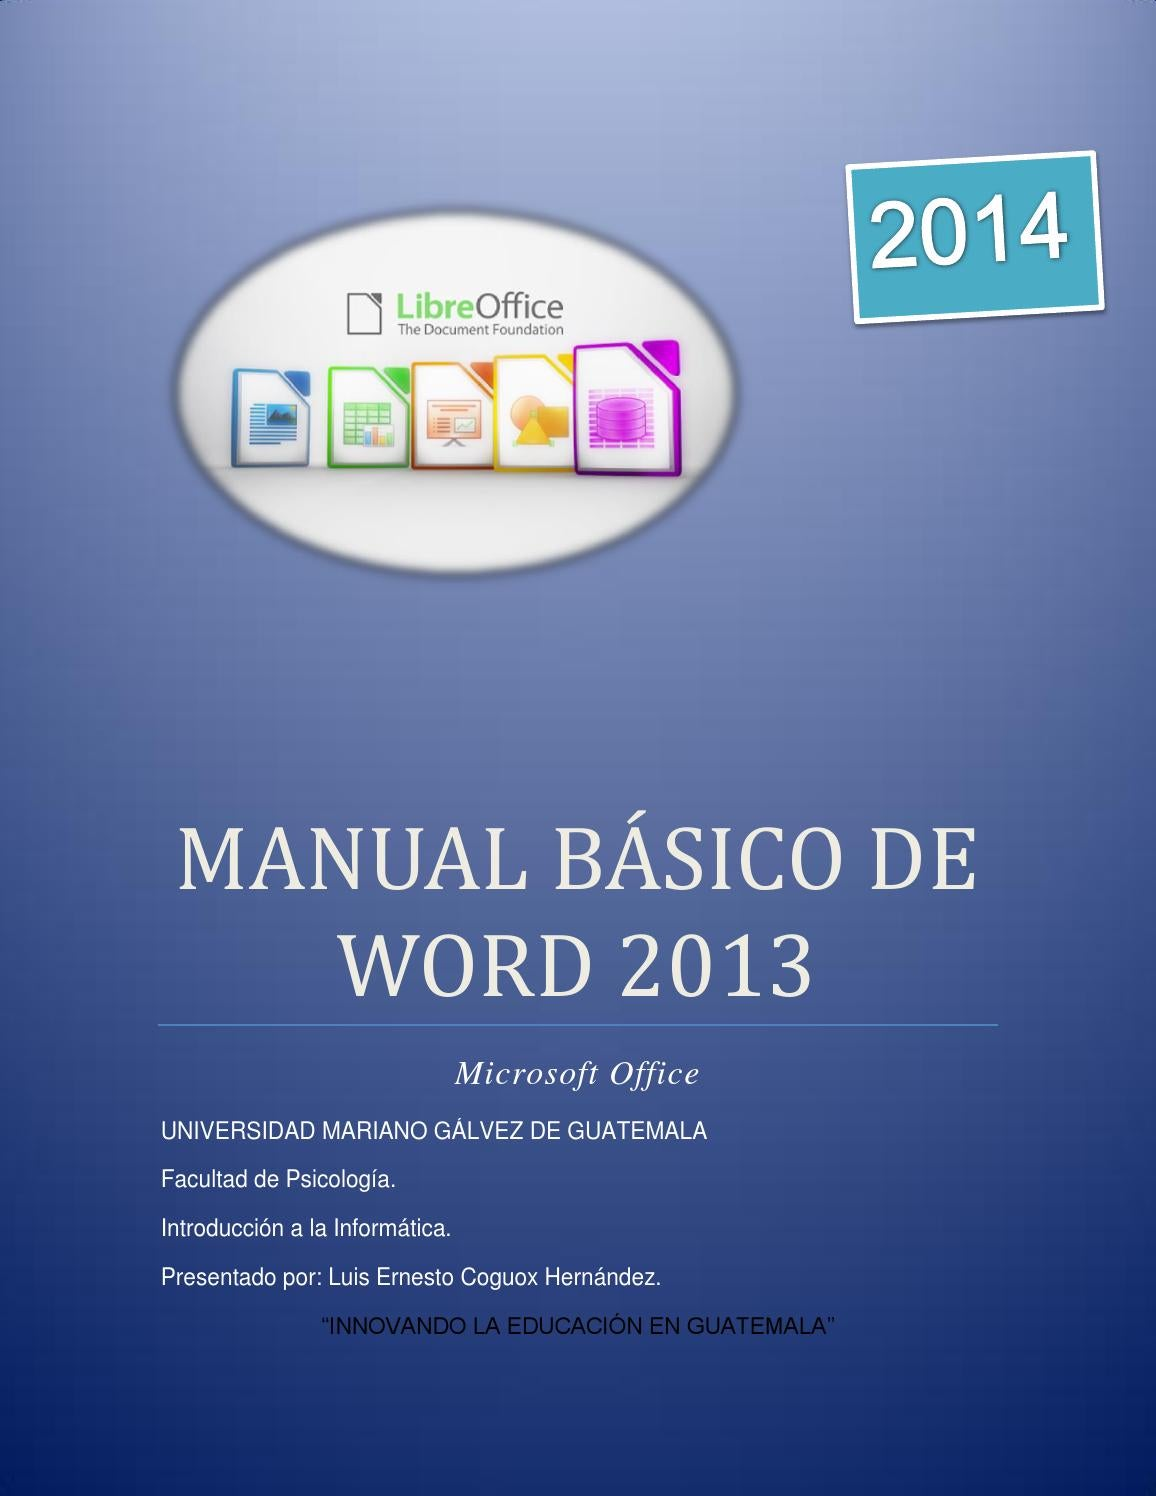 Manual básico de word 2013 by Luis Coguox - issuu